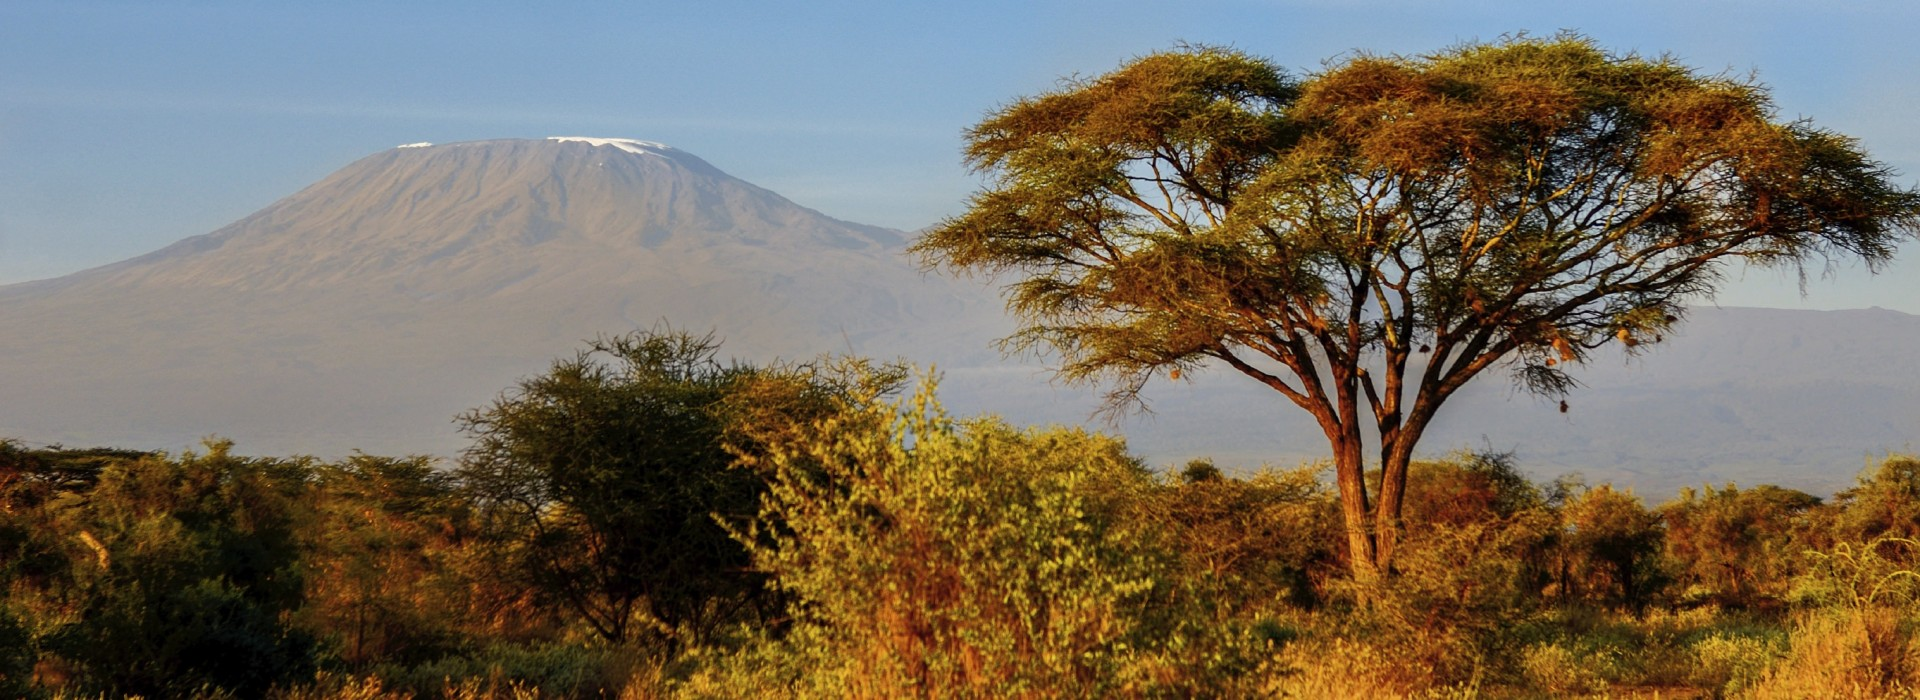 Mount Kilimanjaro, the highest freestanding mountain in the world